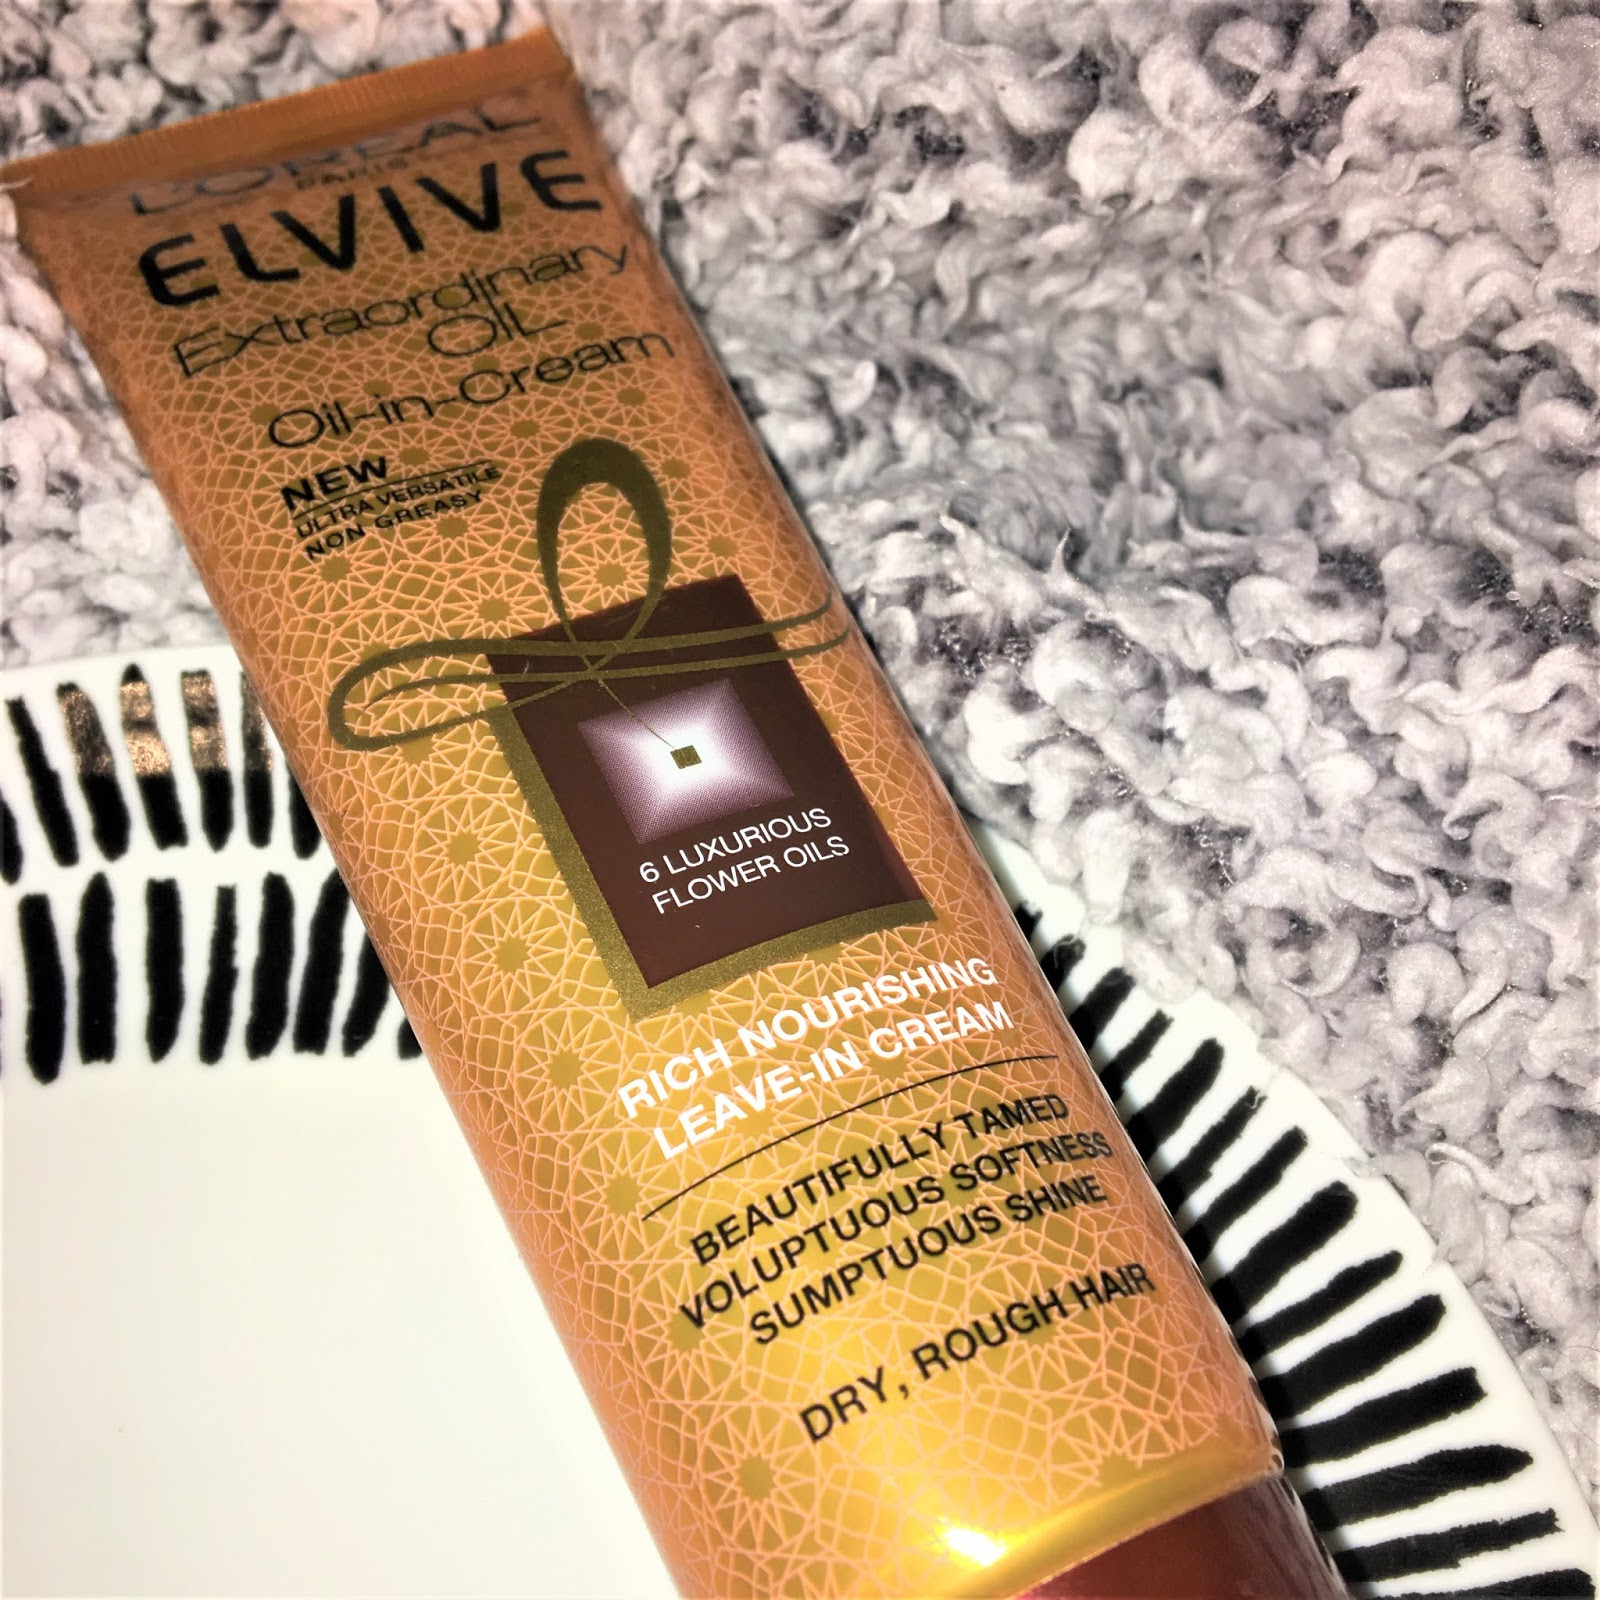 L'oreal Paris Elvive Extraordinary Oil-in-Cream